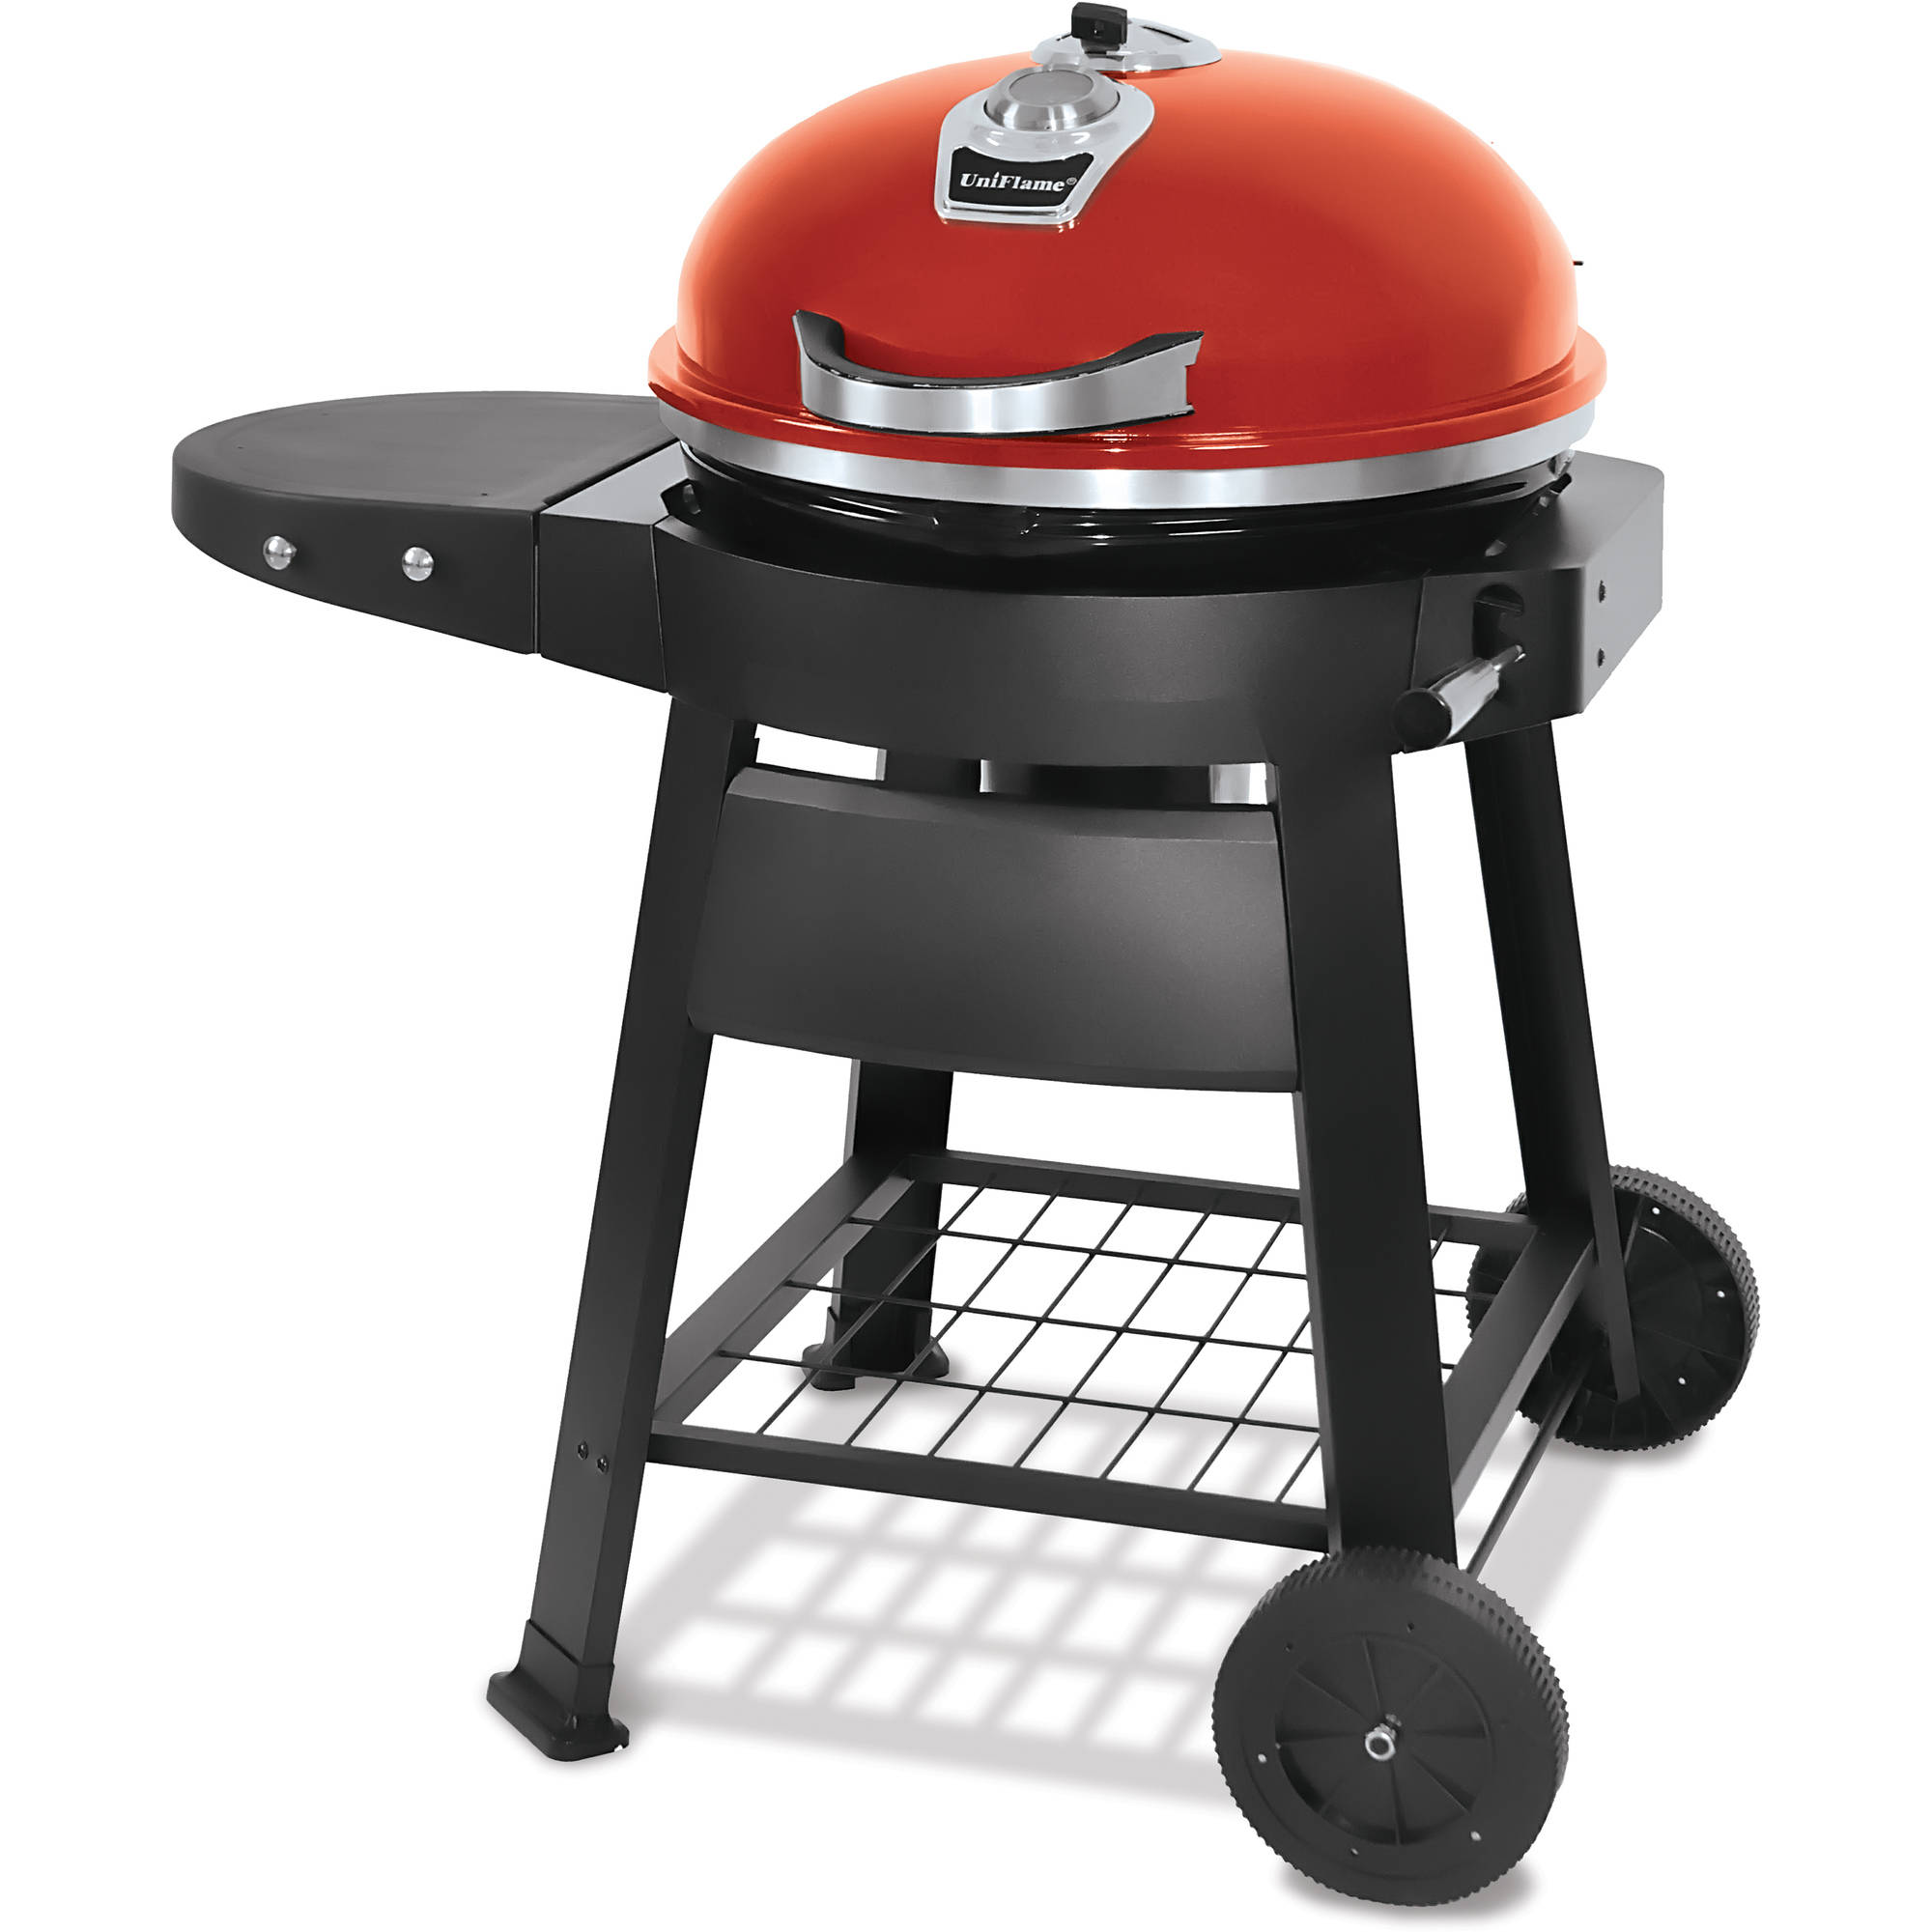 Uniflame Charcoal Grill by Generic